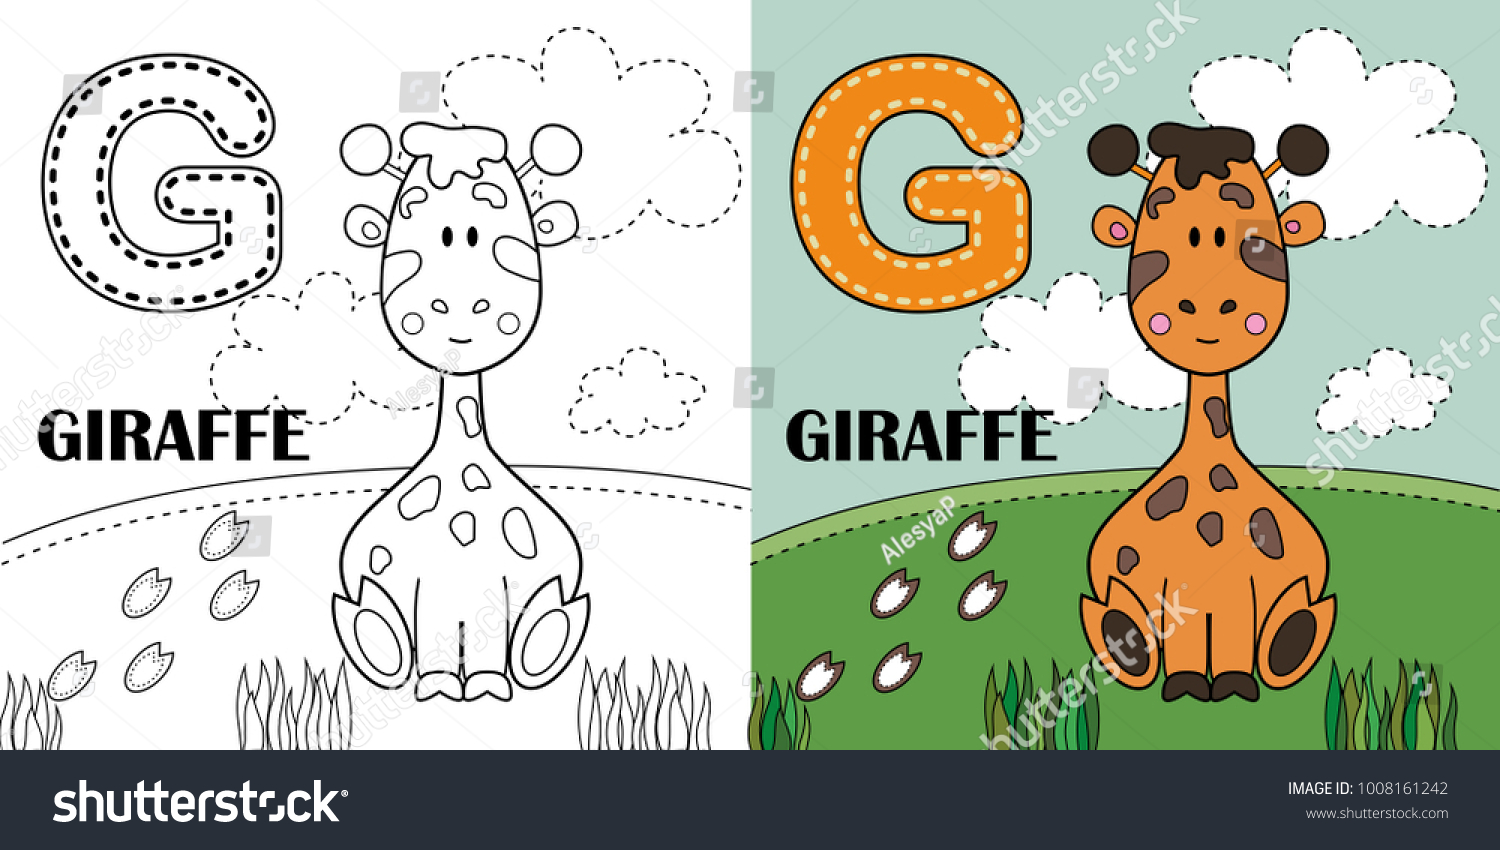 G Letter Giraffe Coloring Book Page Stock Vector (Royalty Free ...